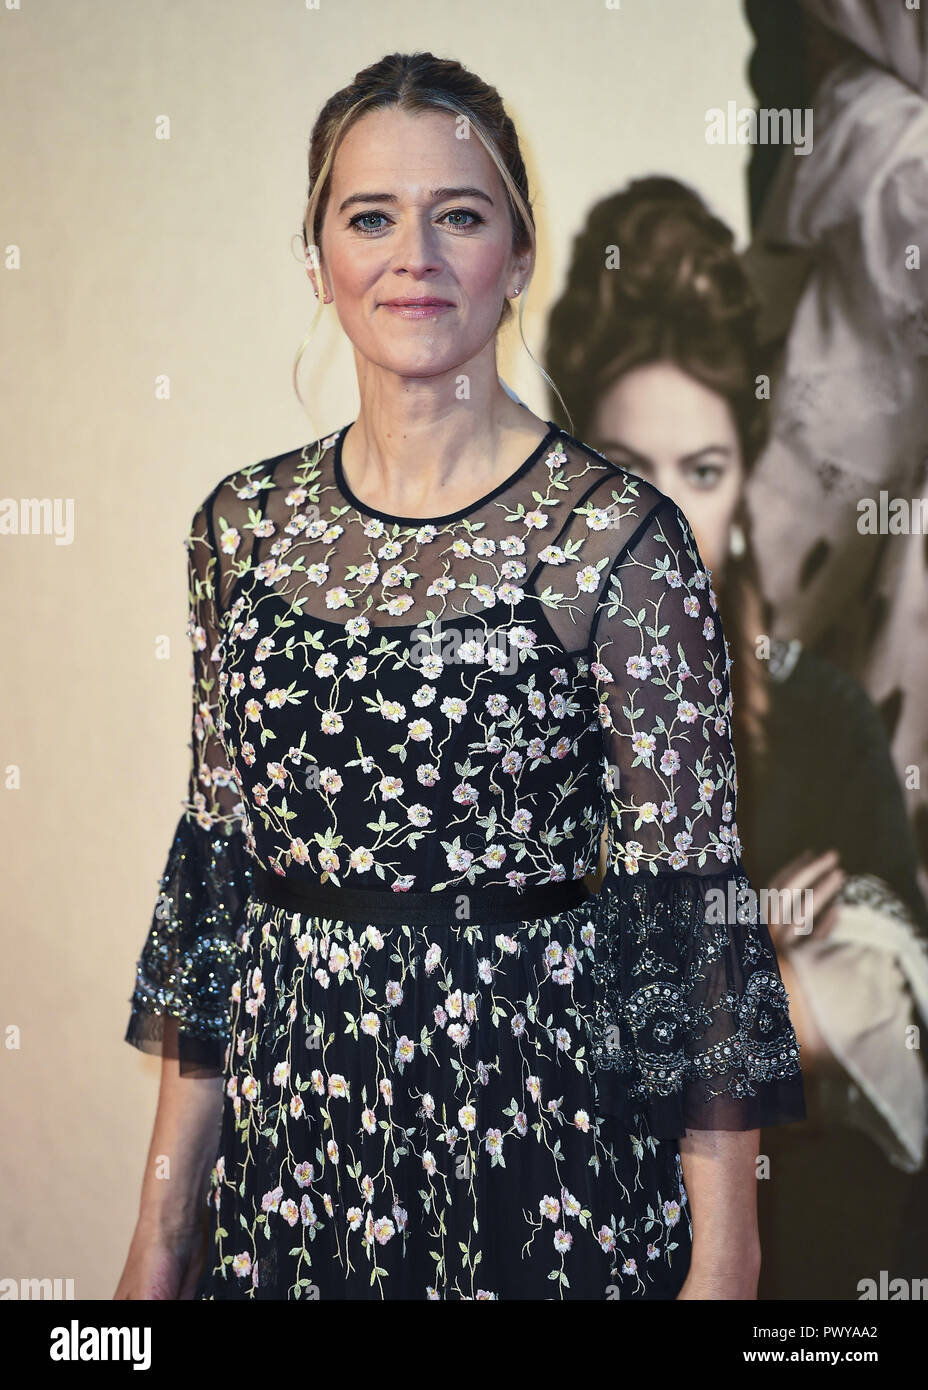 London, UK. 18th Oct, 2018. Edith Bowman attends the UK Premiere of 'The Favourite' & American Express Gala at the 62nd BFI London Film Festival. Credit: Gary Mitchell/SOPA Images/ZUMA Wire/Alamy Live News - Stock Image